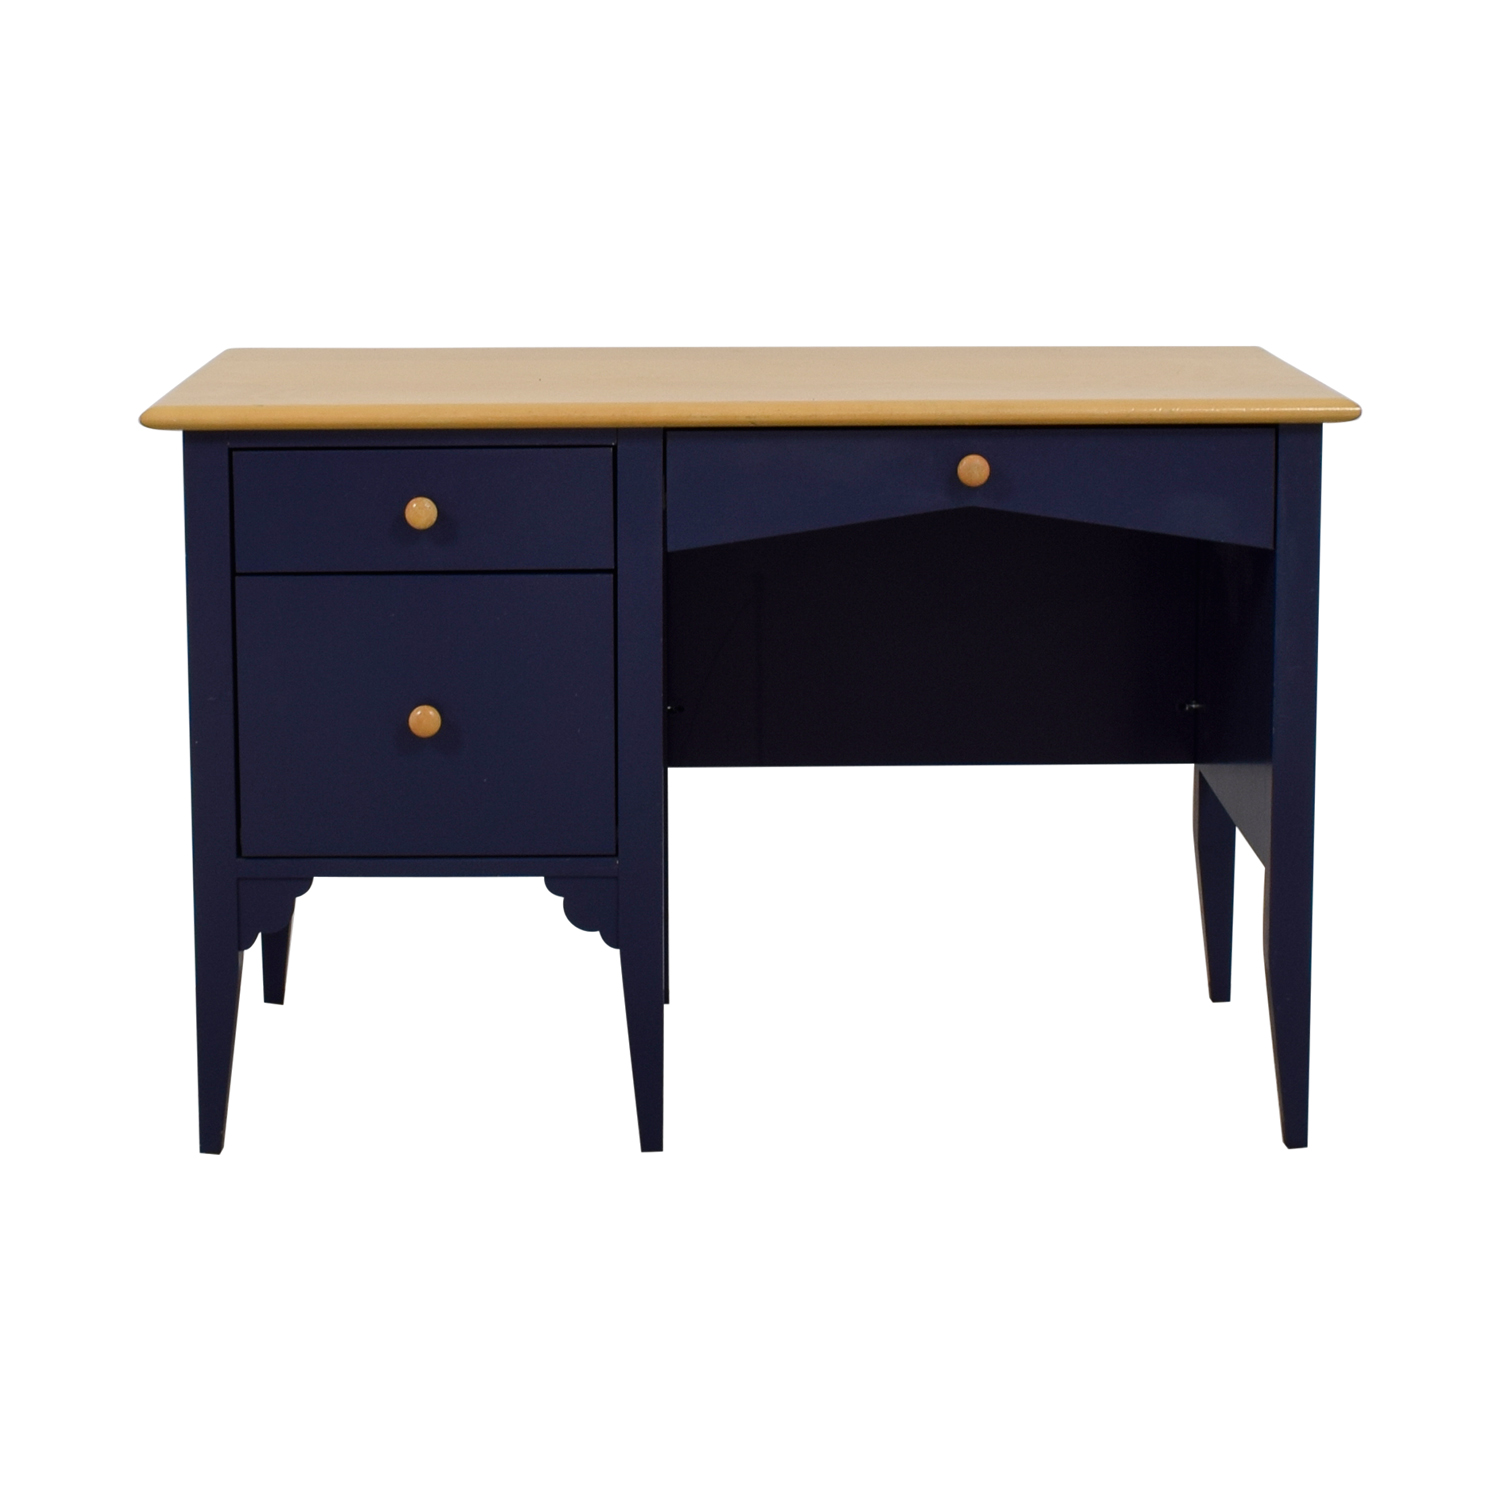 Maine Cottage Furniture Maine Cottage Furniture Three Drawer Desk price